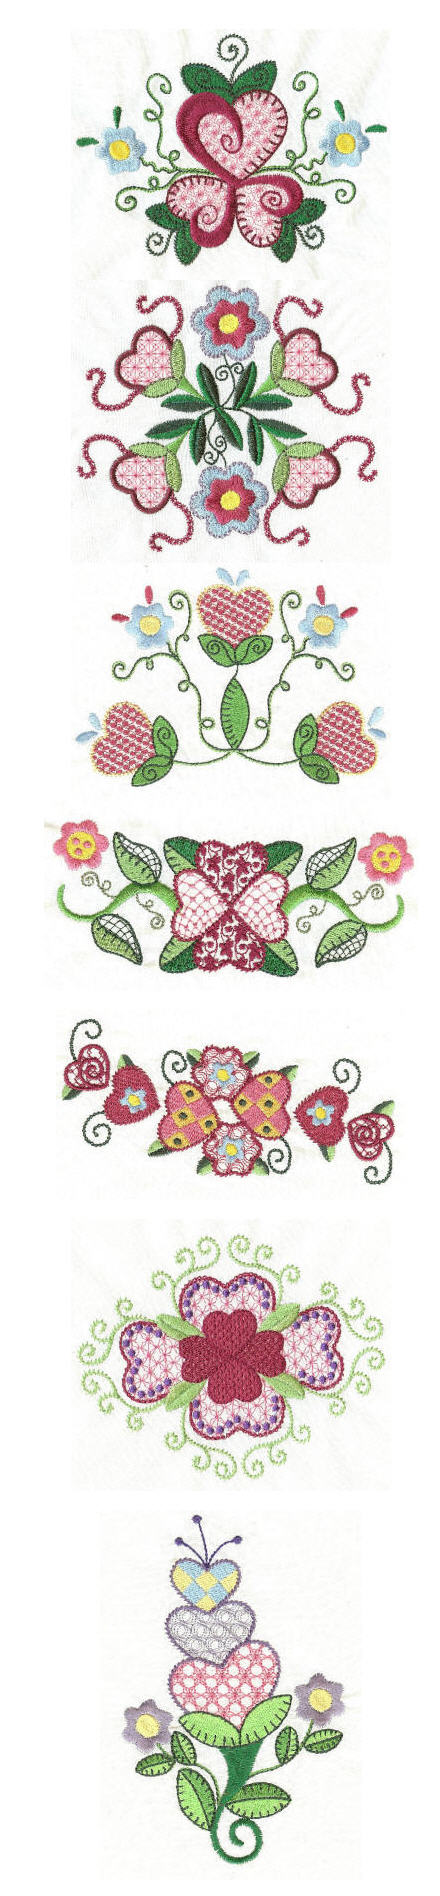 Embroidery designs | Free machine embroidery designs |Jacobean Hearts